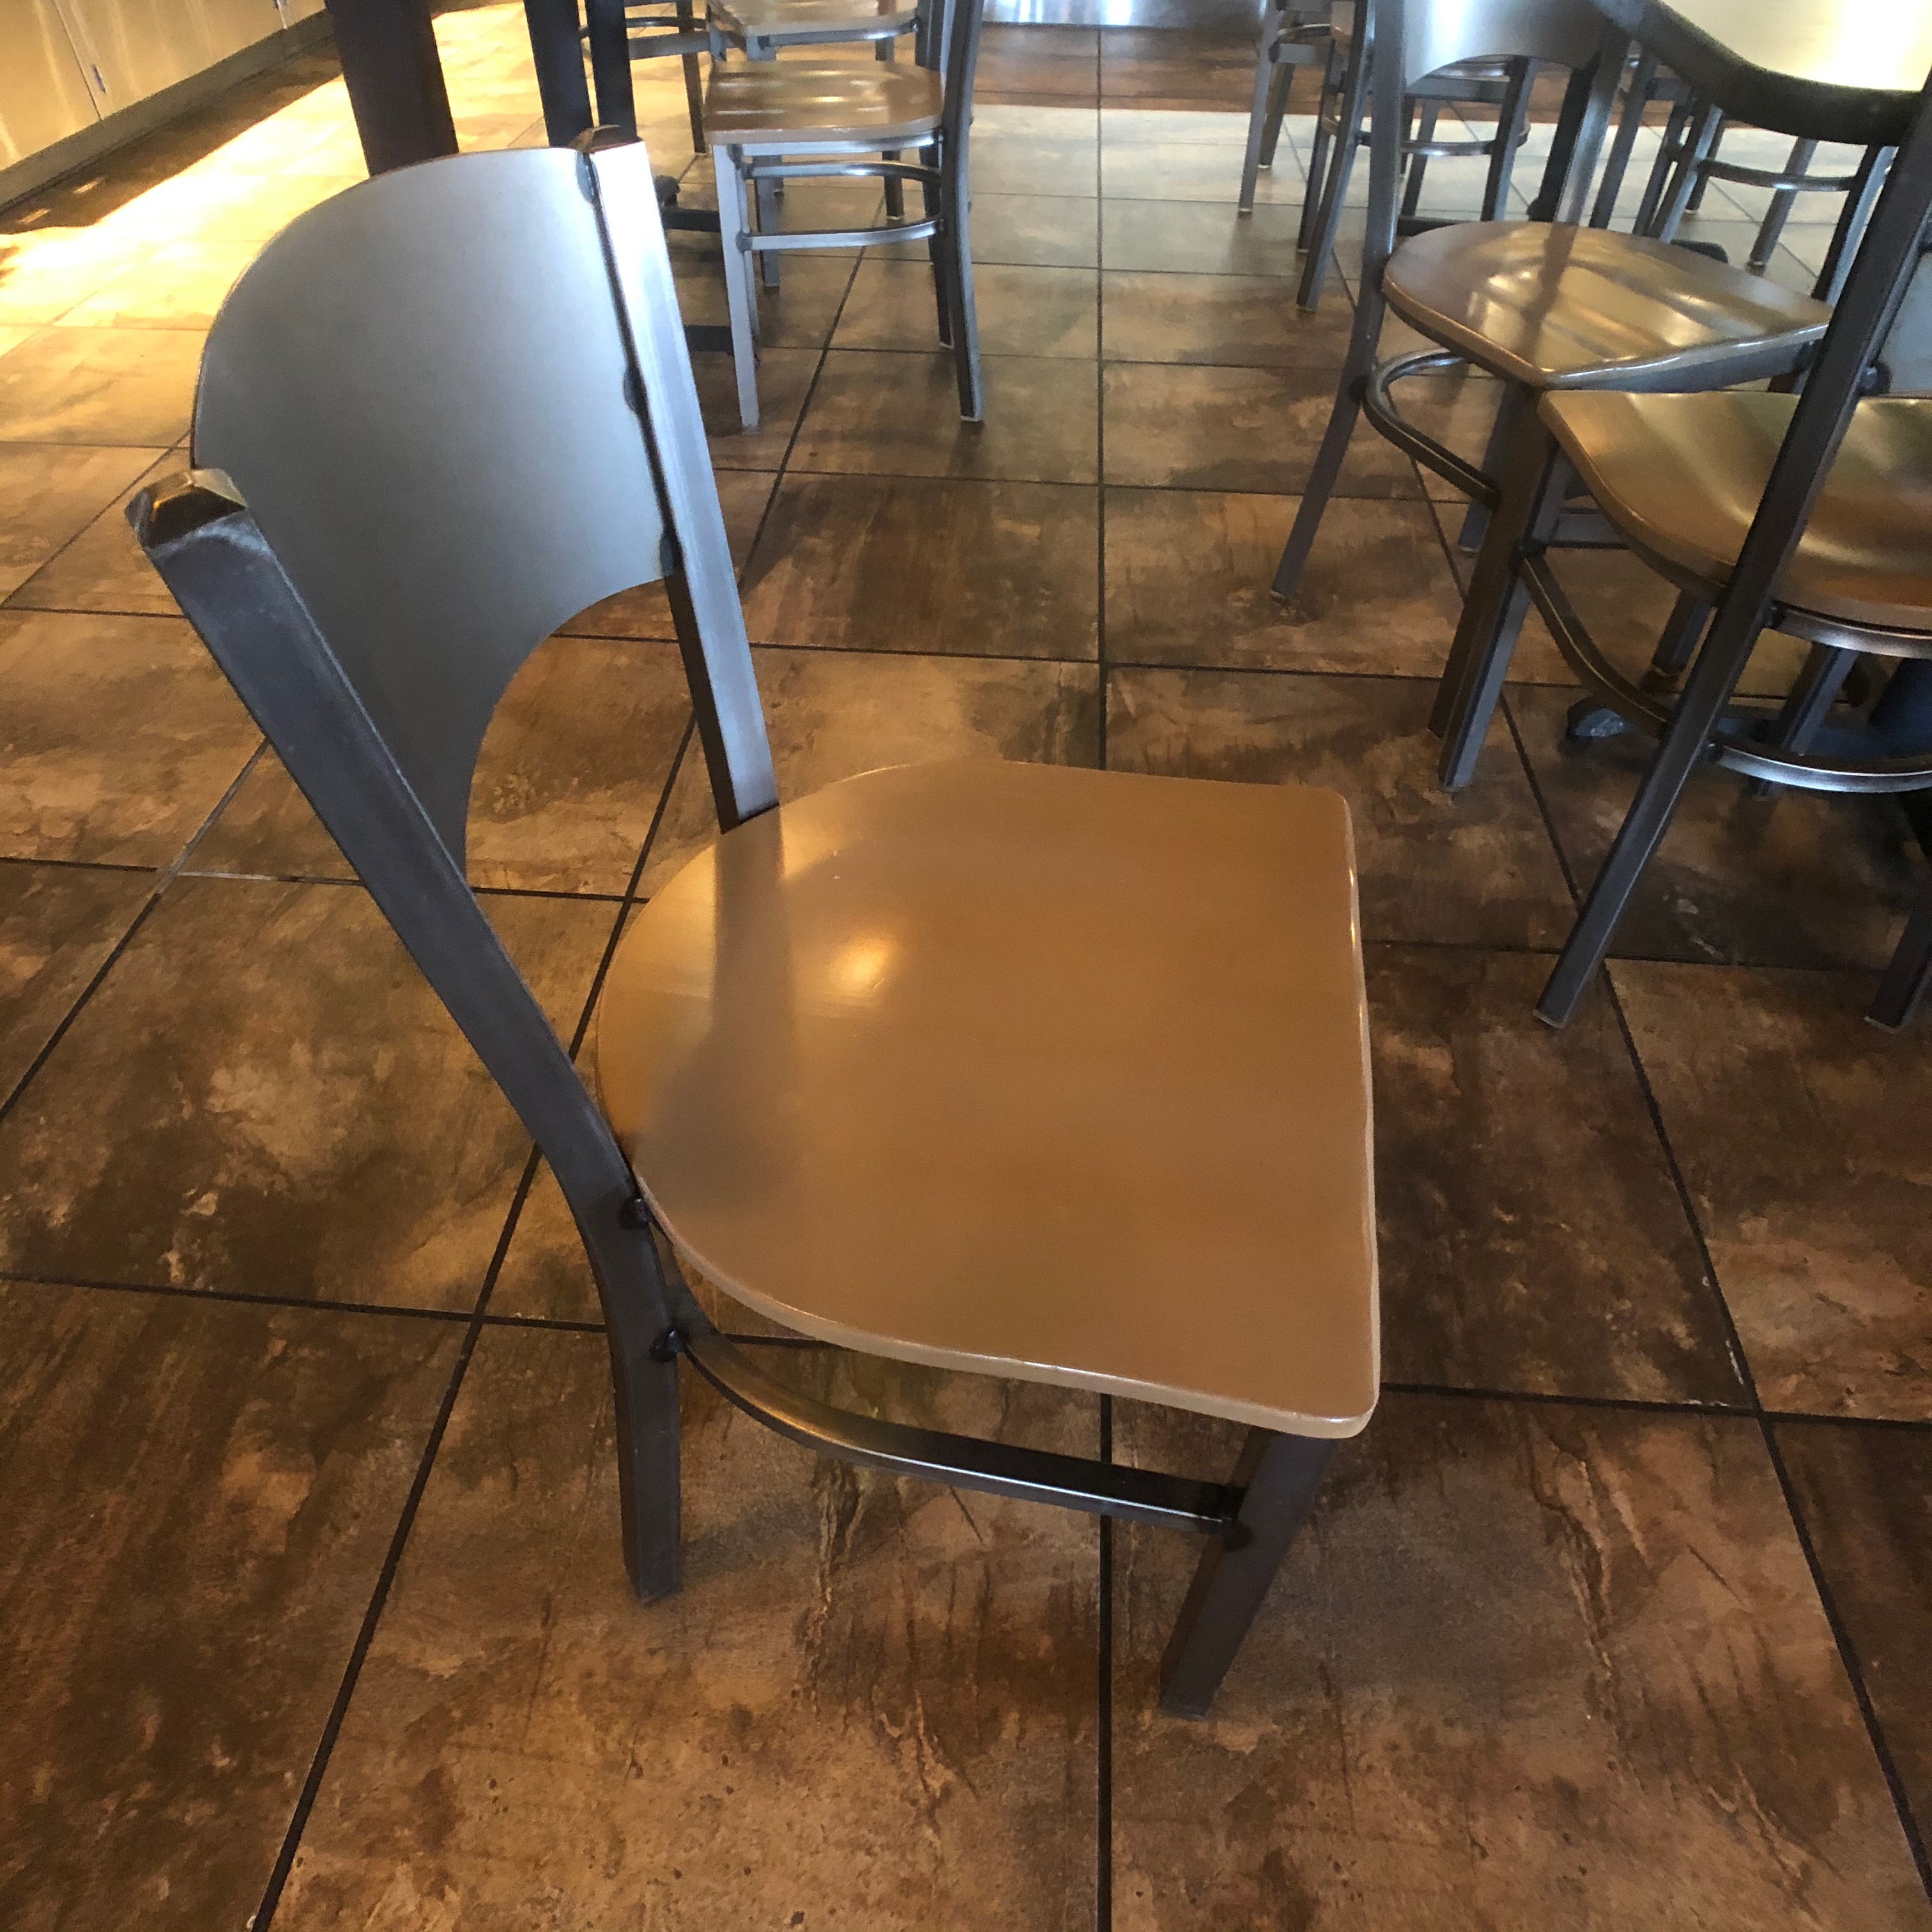 "(10) 2-Person Tables with (20) Walsh Simmons Seating Chairs, Approx. 2'6"" L x 24"" W - Image 5 of 5"